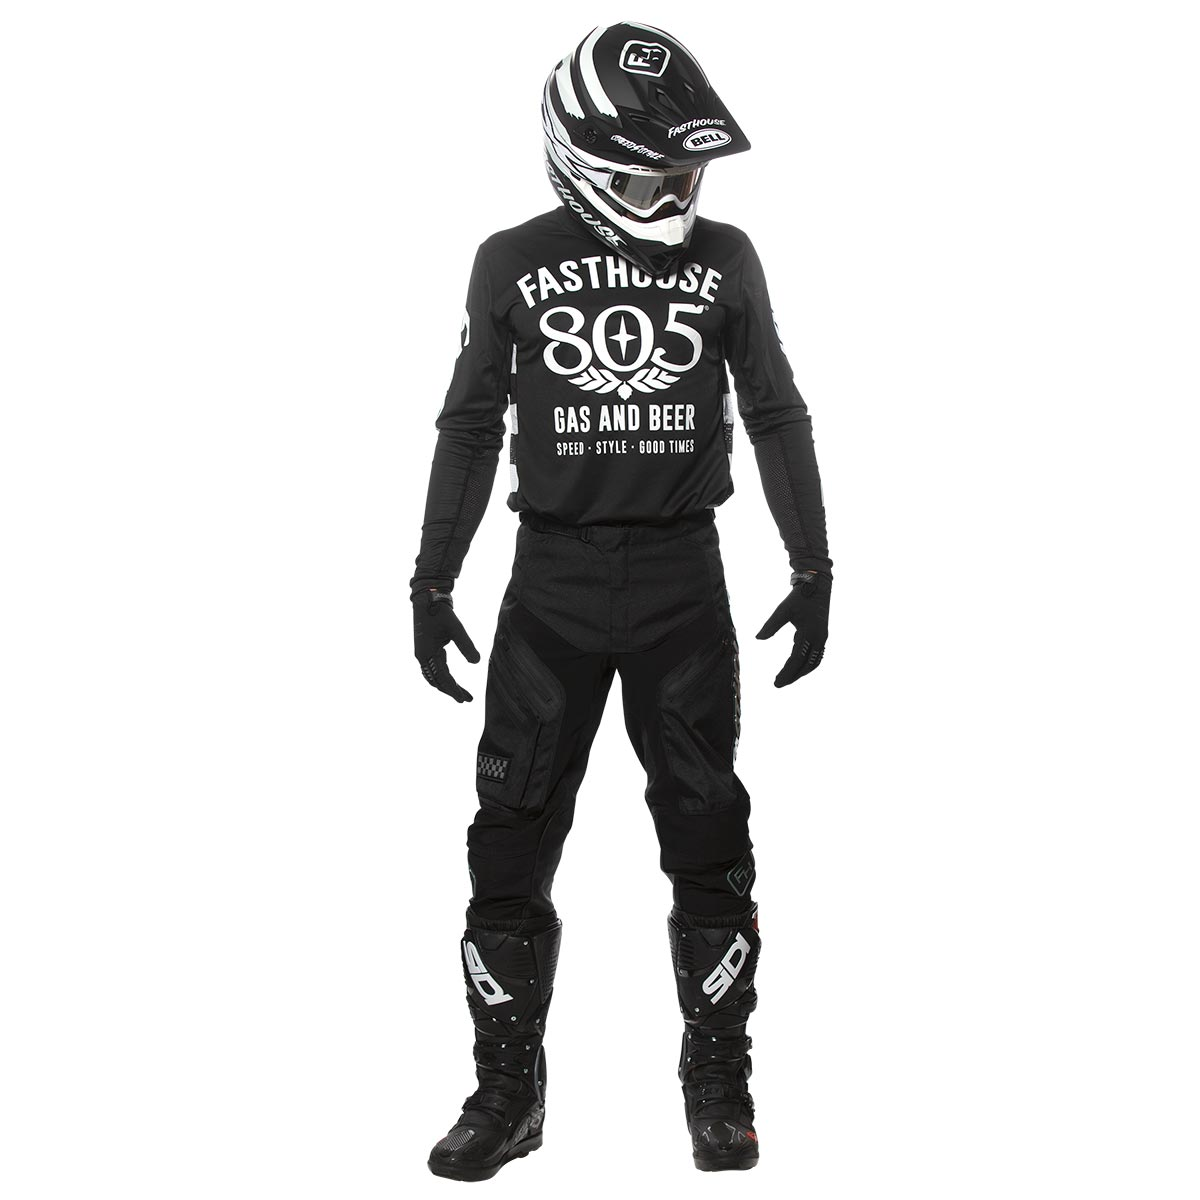 805 Gas and Beer Jersey - Black